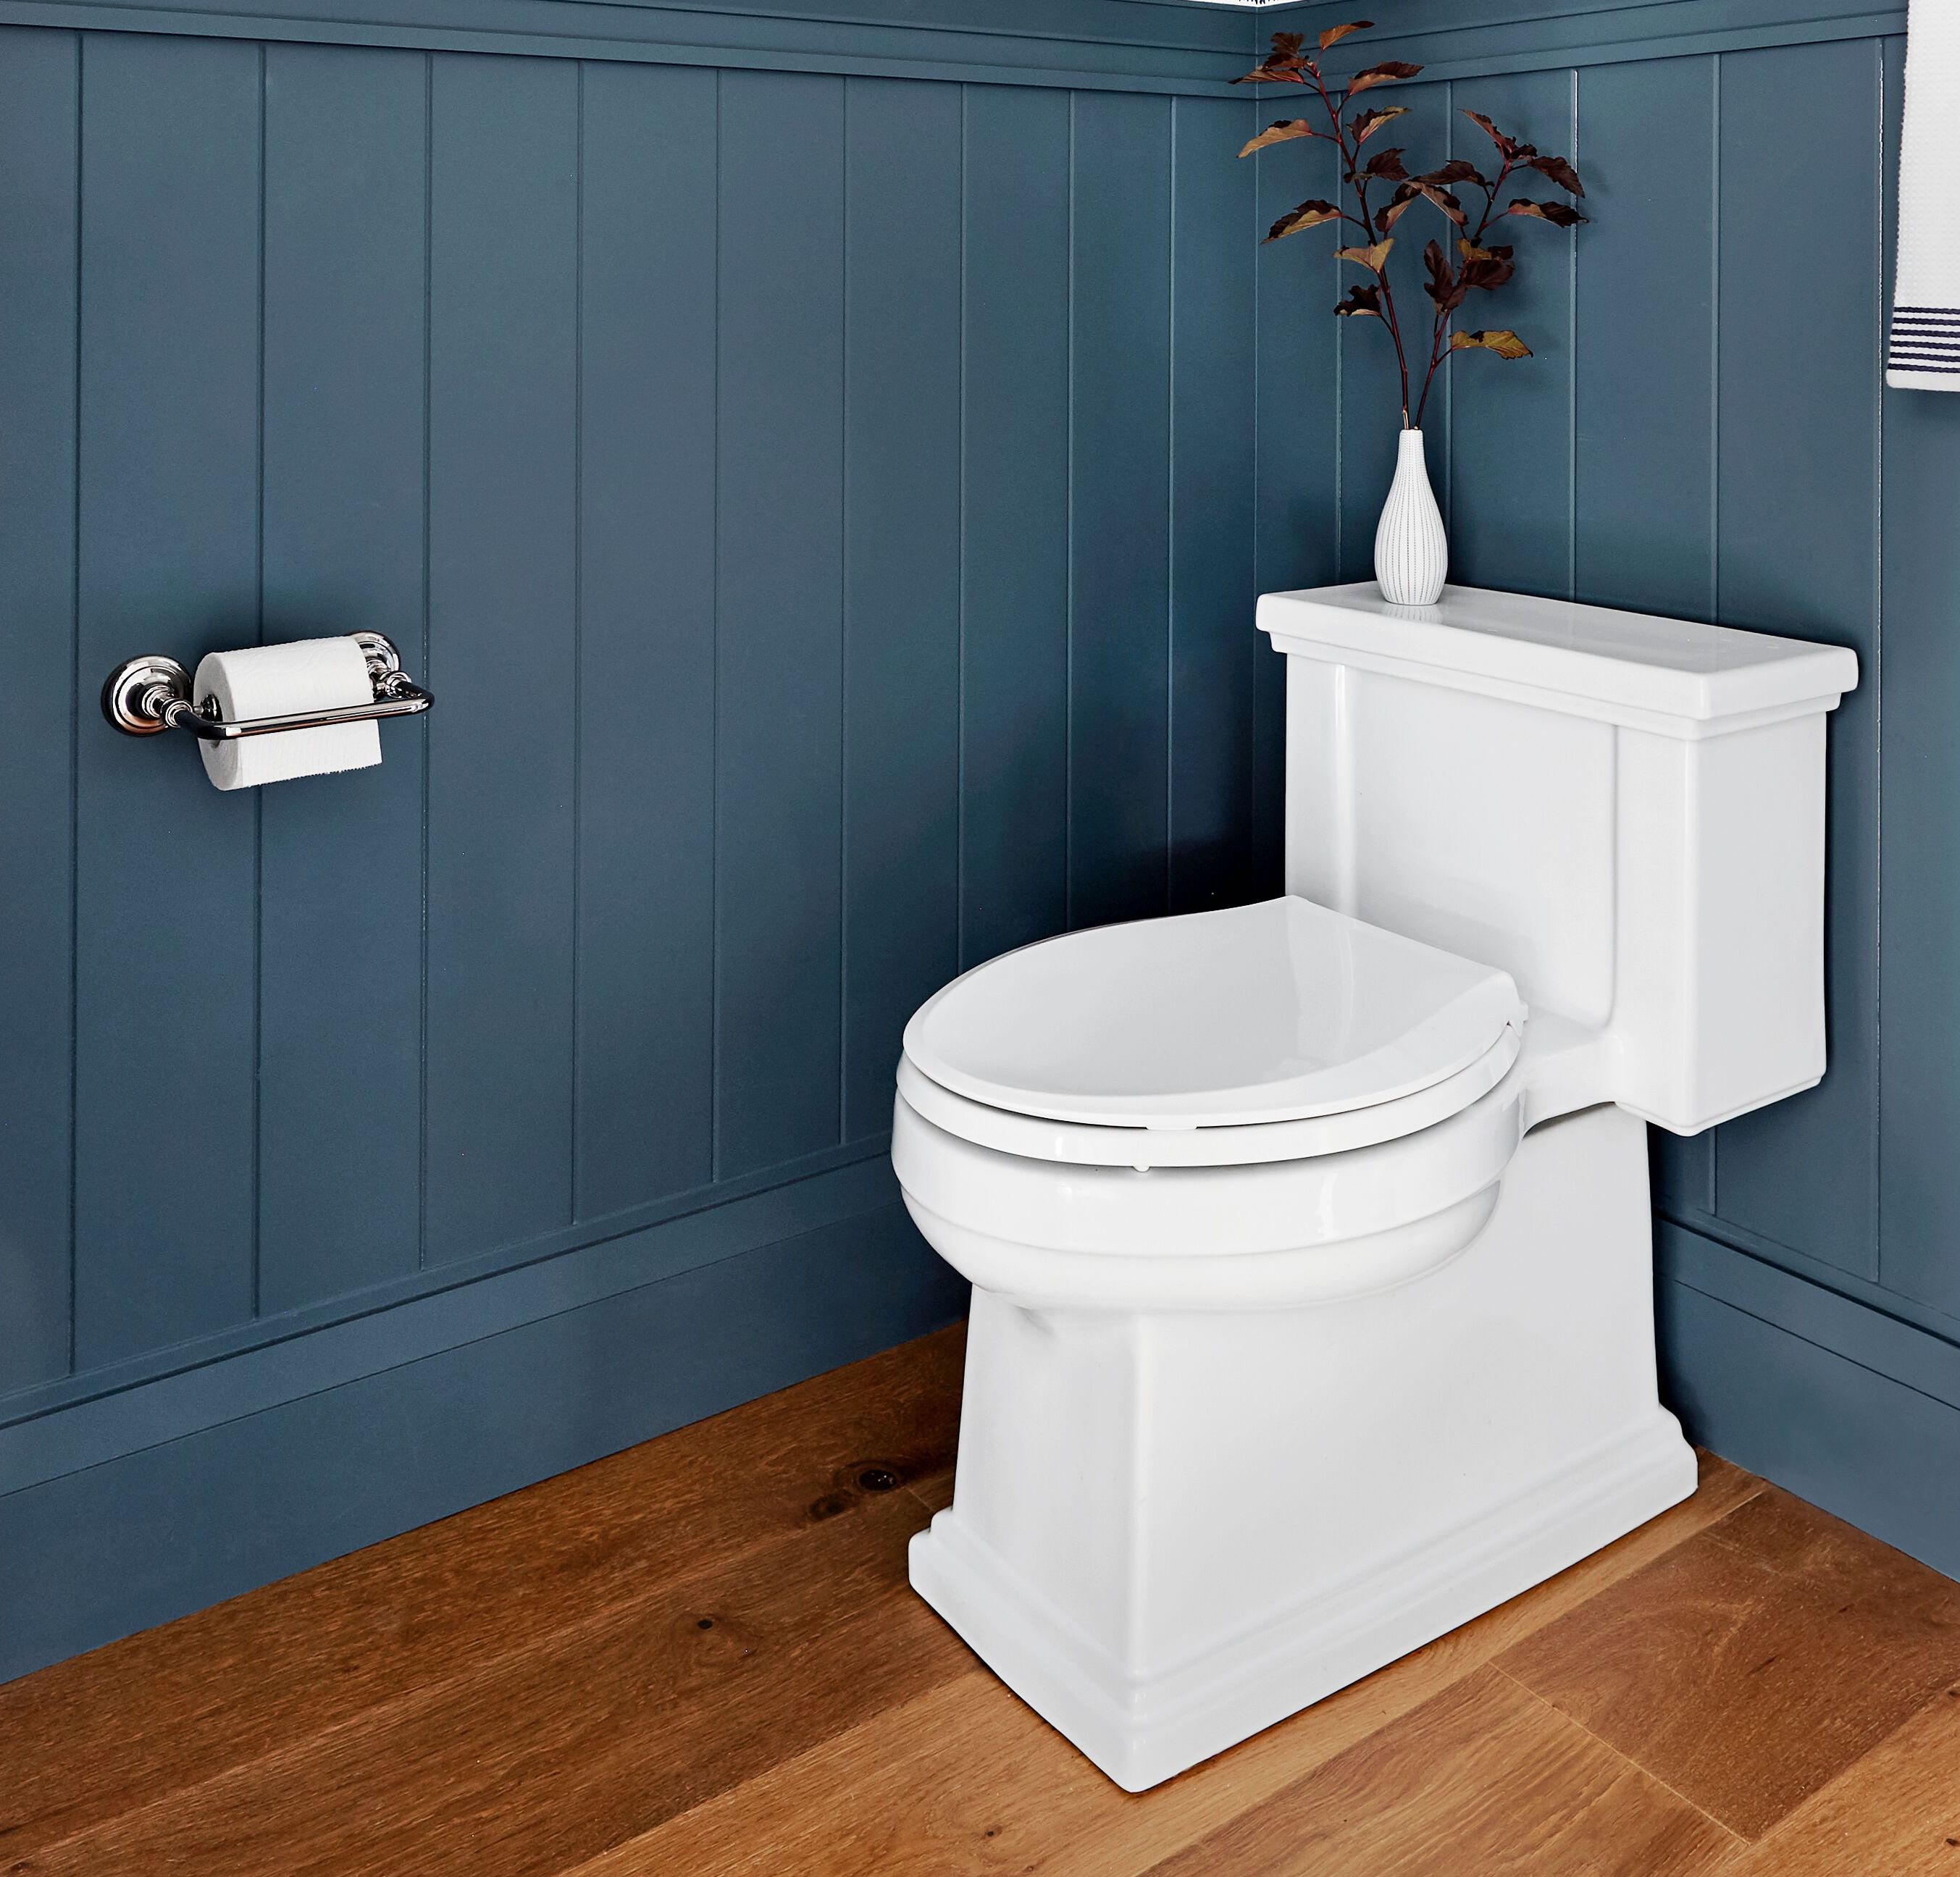 """""""The John"""": Why Do We Call Toilets by a Man's Name?"""